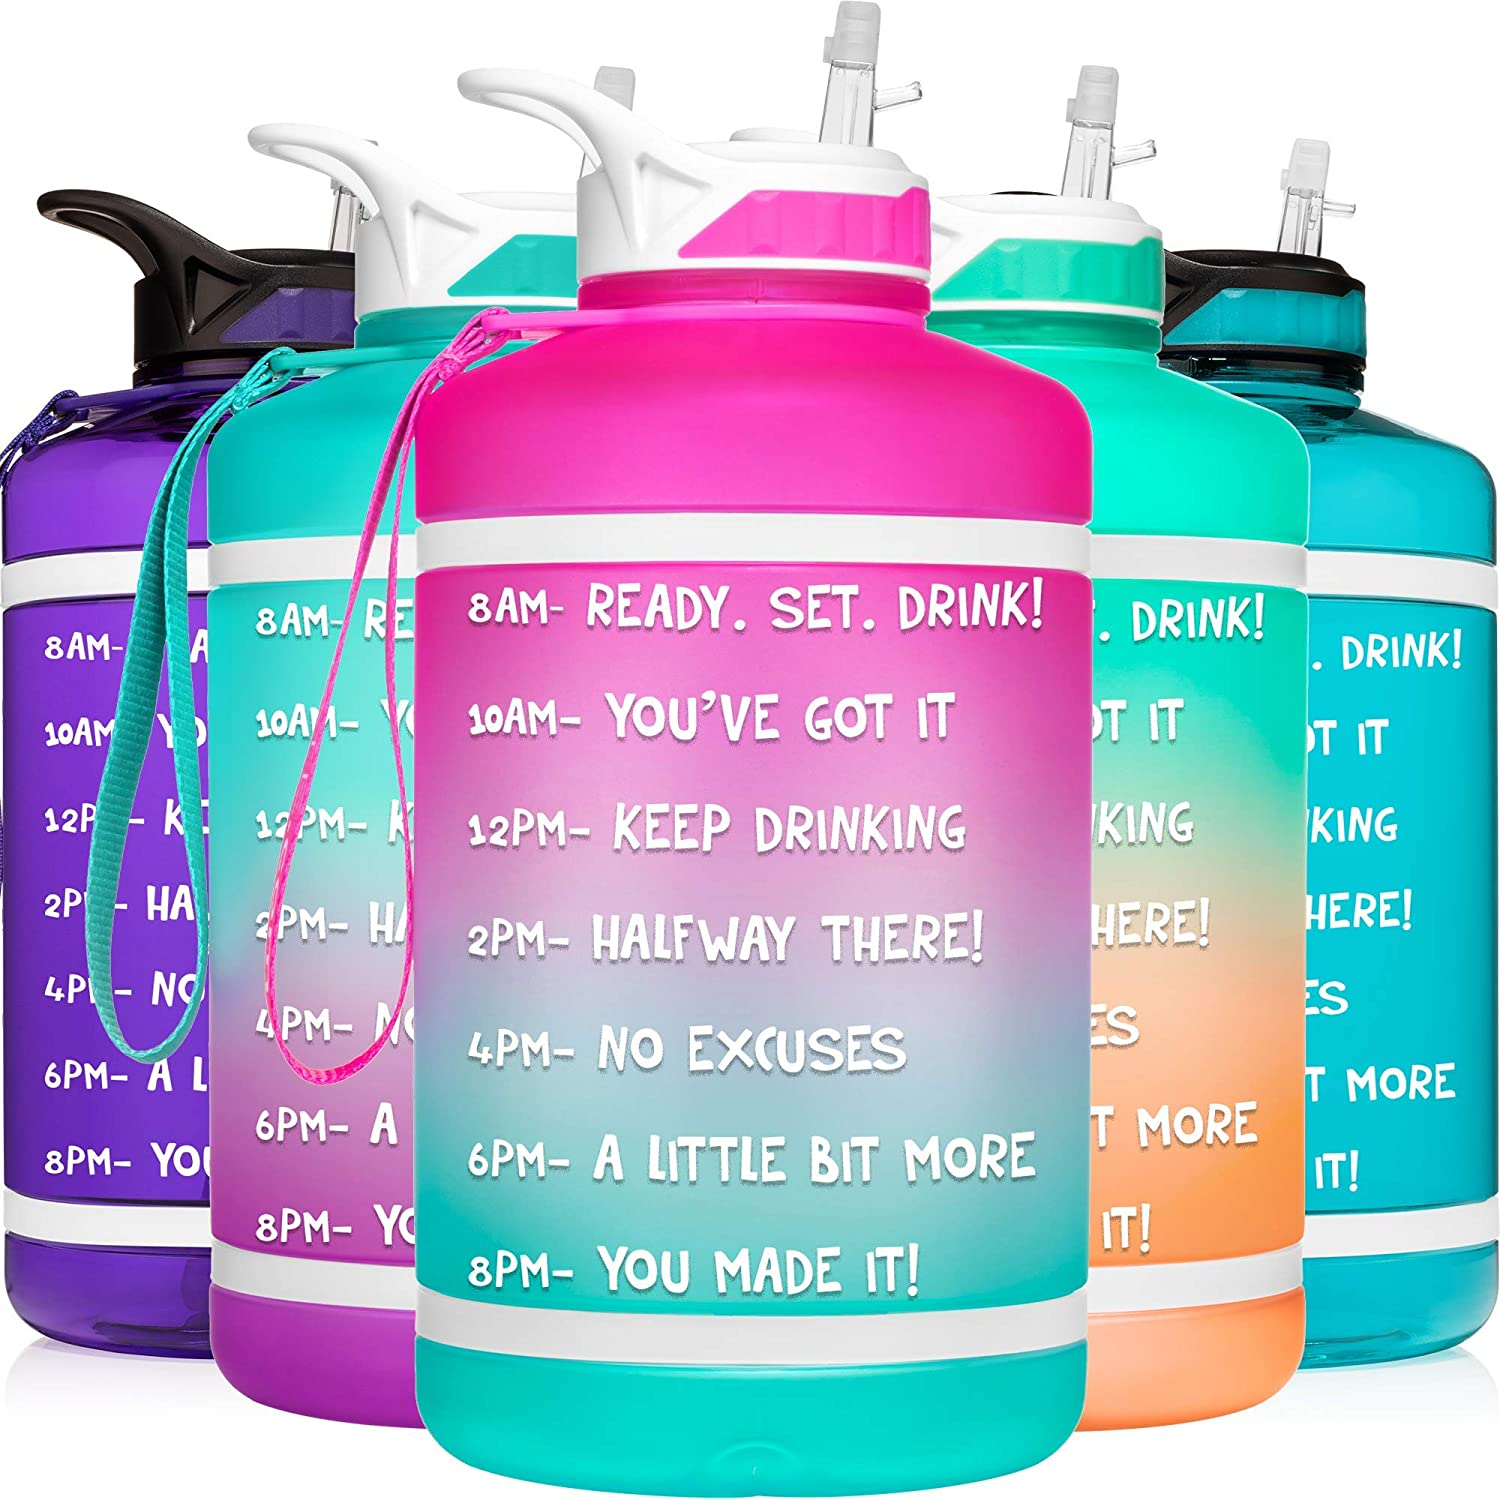 Amazon Com Hydromate Half Gallon 64 Oz Motivational Water Bottle With Straw Time Marker Large Bpa Free Jug Handle Reusable Workout Gym Fitness Drink More Hydro Mate 64oz Half Gallon Ombre Pink